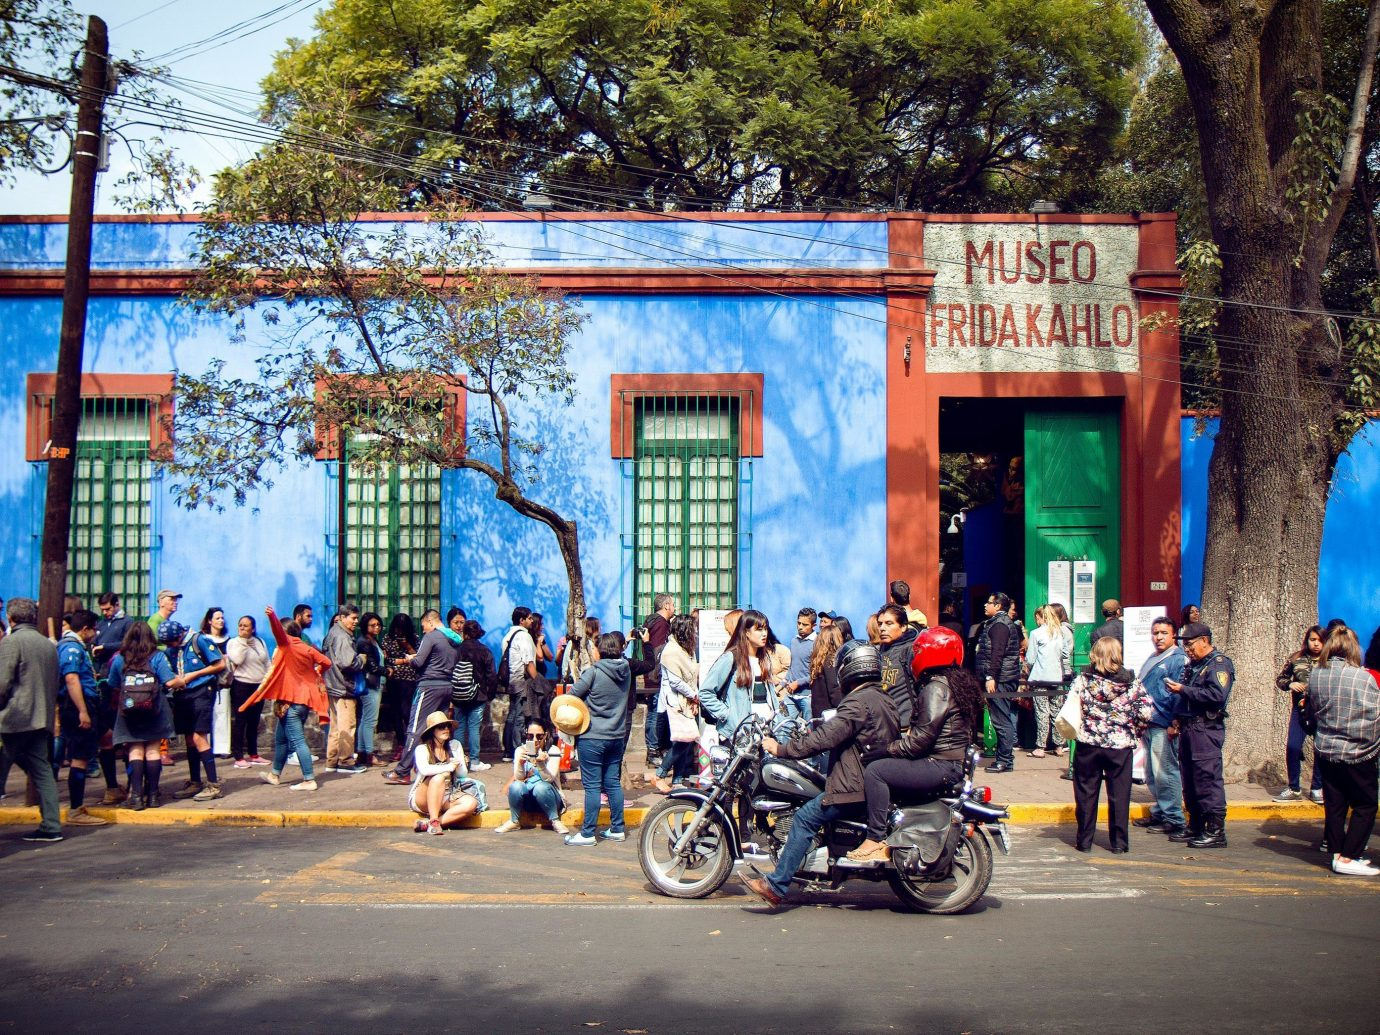 Mexico City Trip Ideas road tree outdoor land vehicle car vehicle infrastructure urban area street public space crowd City neighbourhood recreation motorcycle plant pedestrian